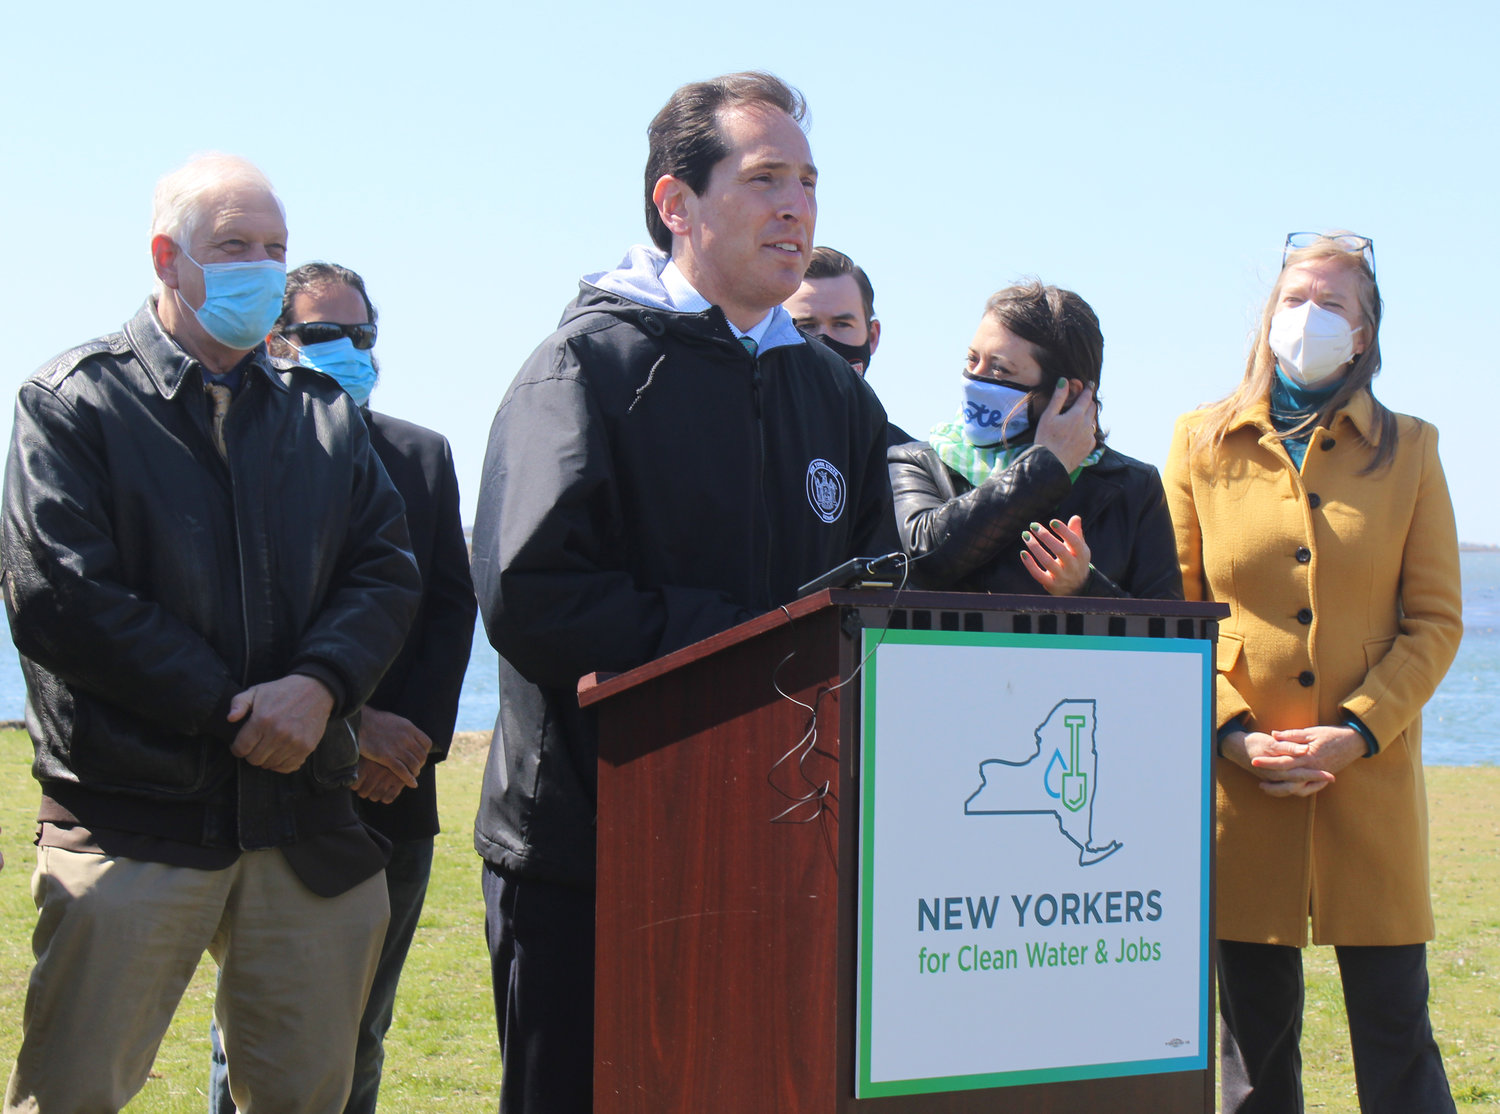 State Senator Todd Kaminsky joined with environmental activists and labor leaders at Wantagh Park last Friday to celebrate the reinstatement of the $3 billion Environmental Bond Act on the 2022 statewide ballot.